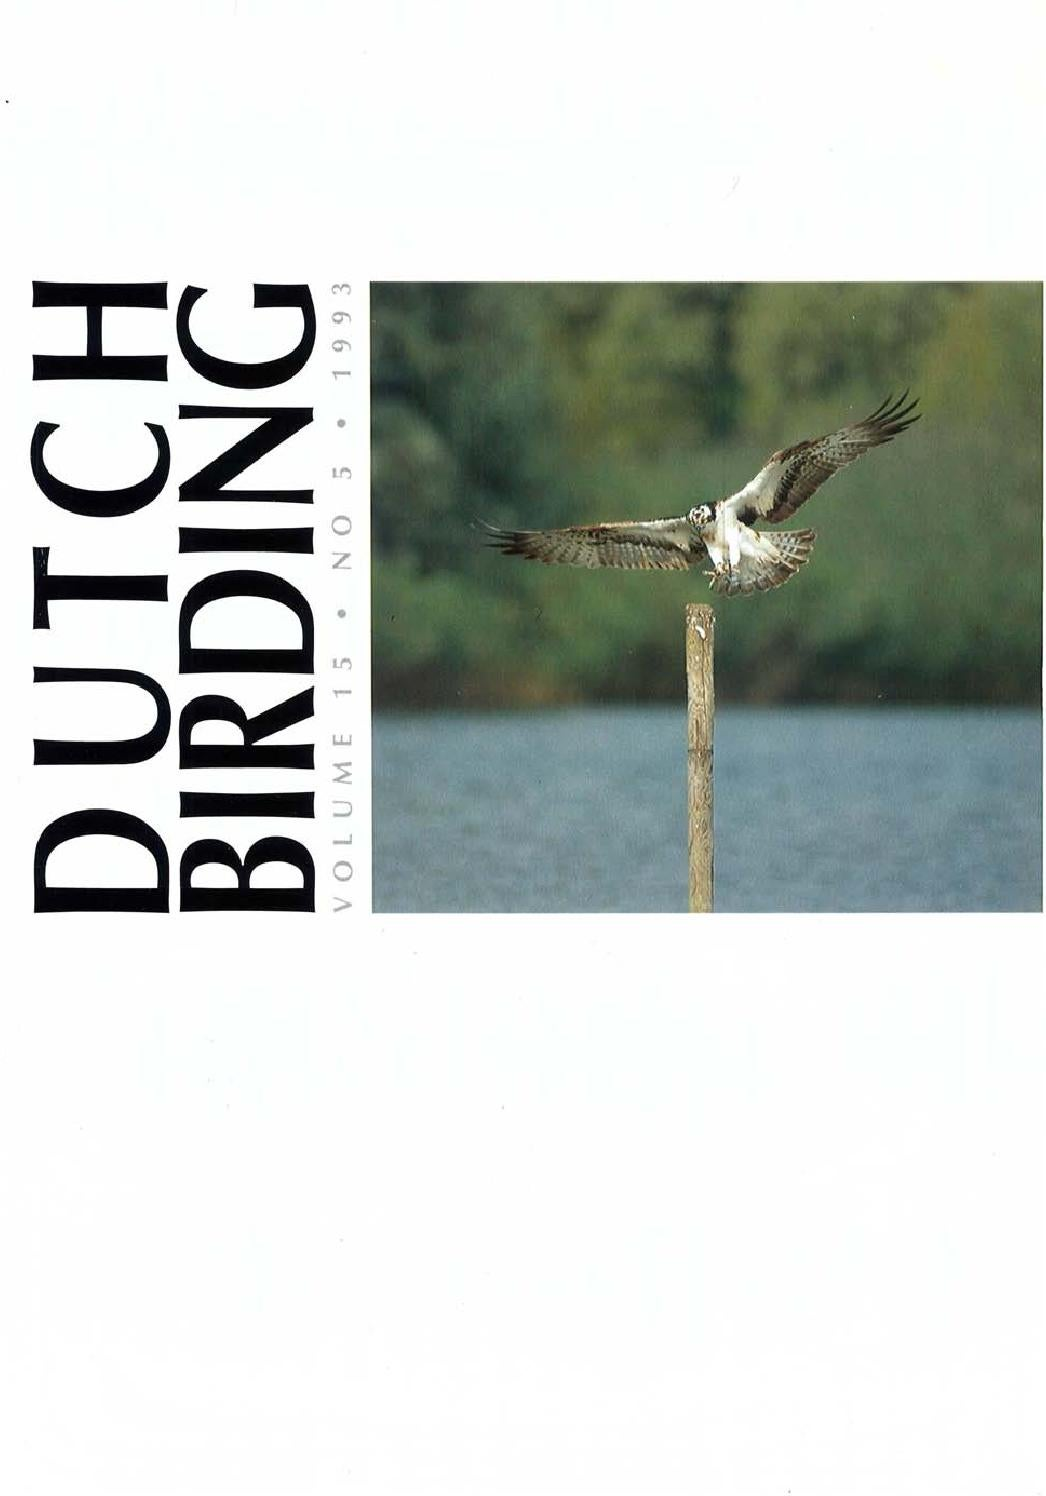 Db 15(5)1993 by DutchBirding - issuu